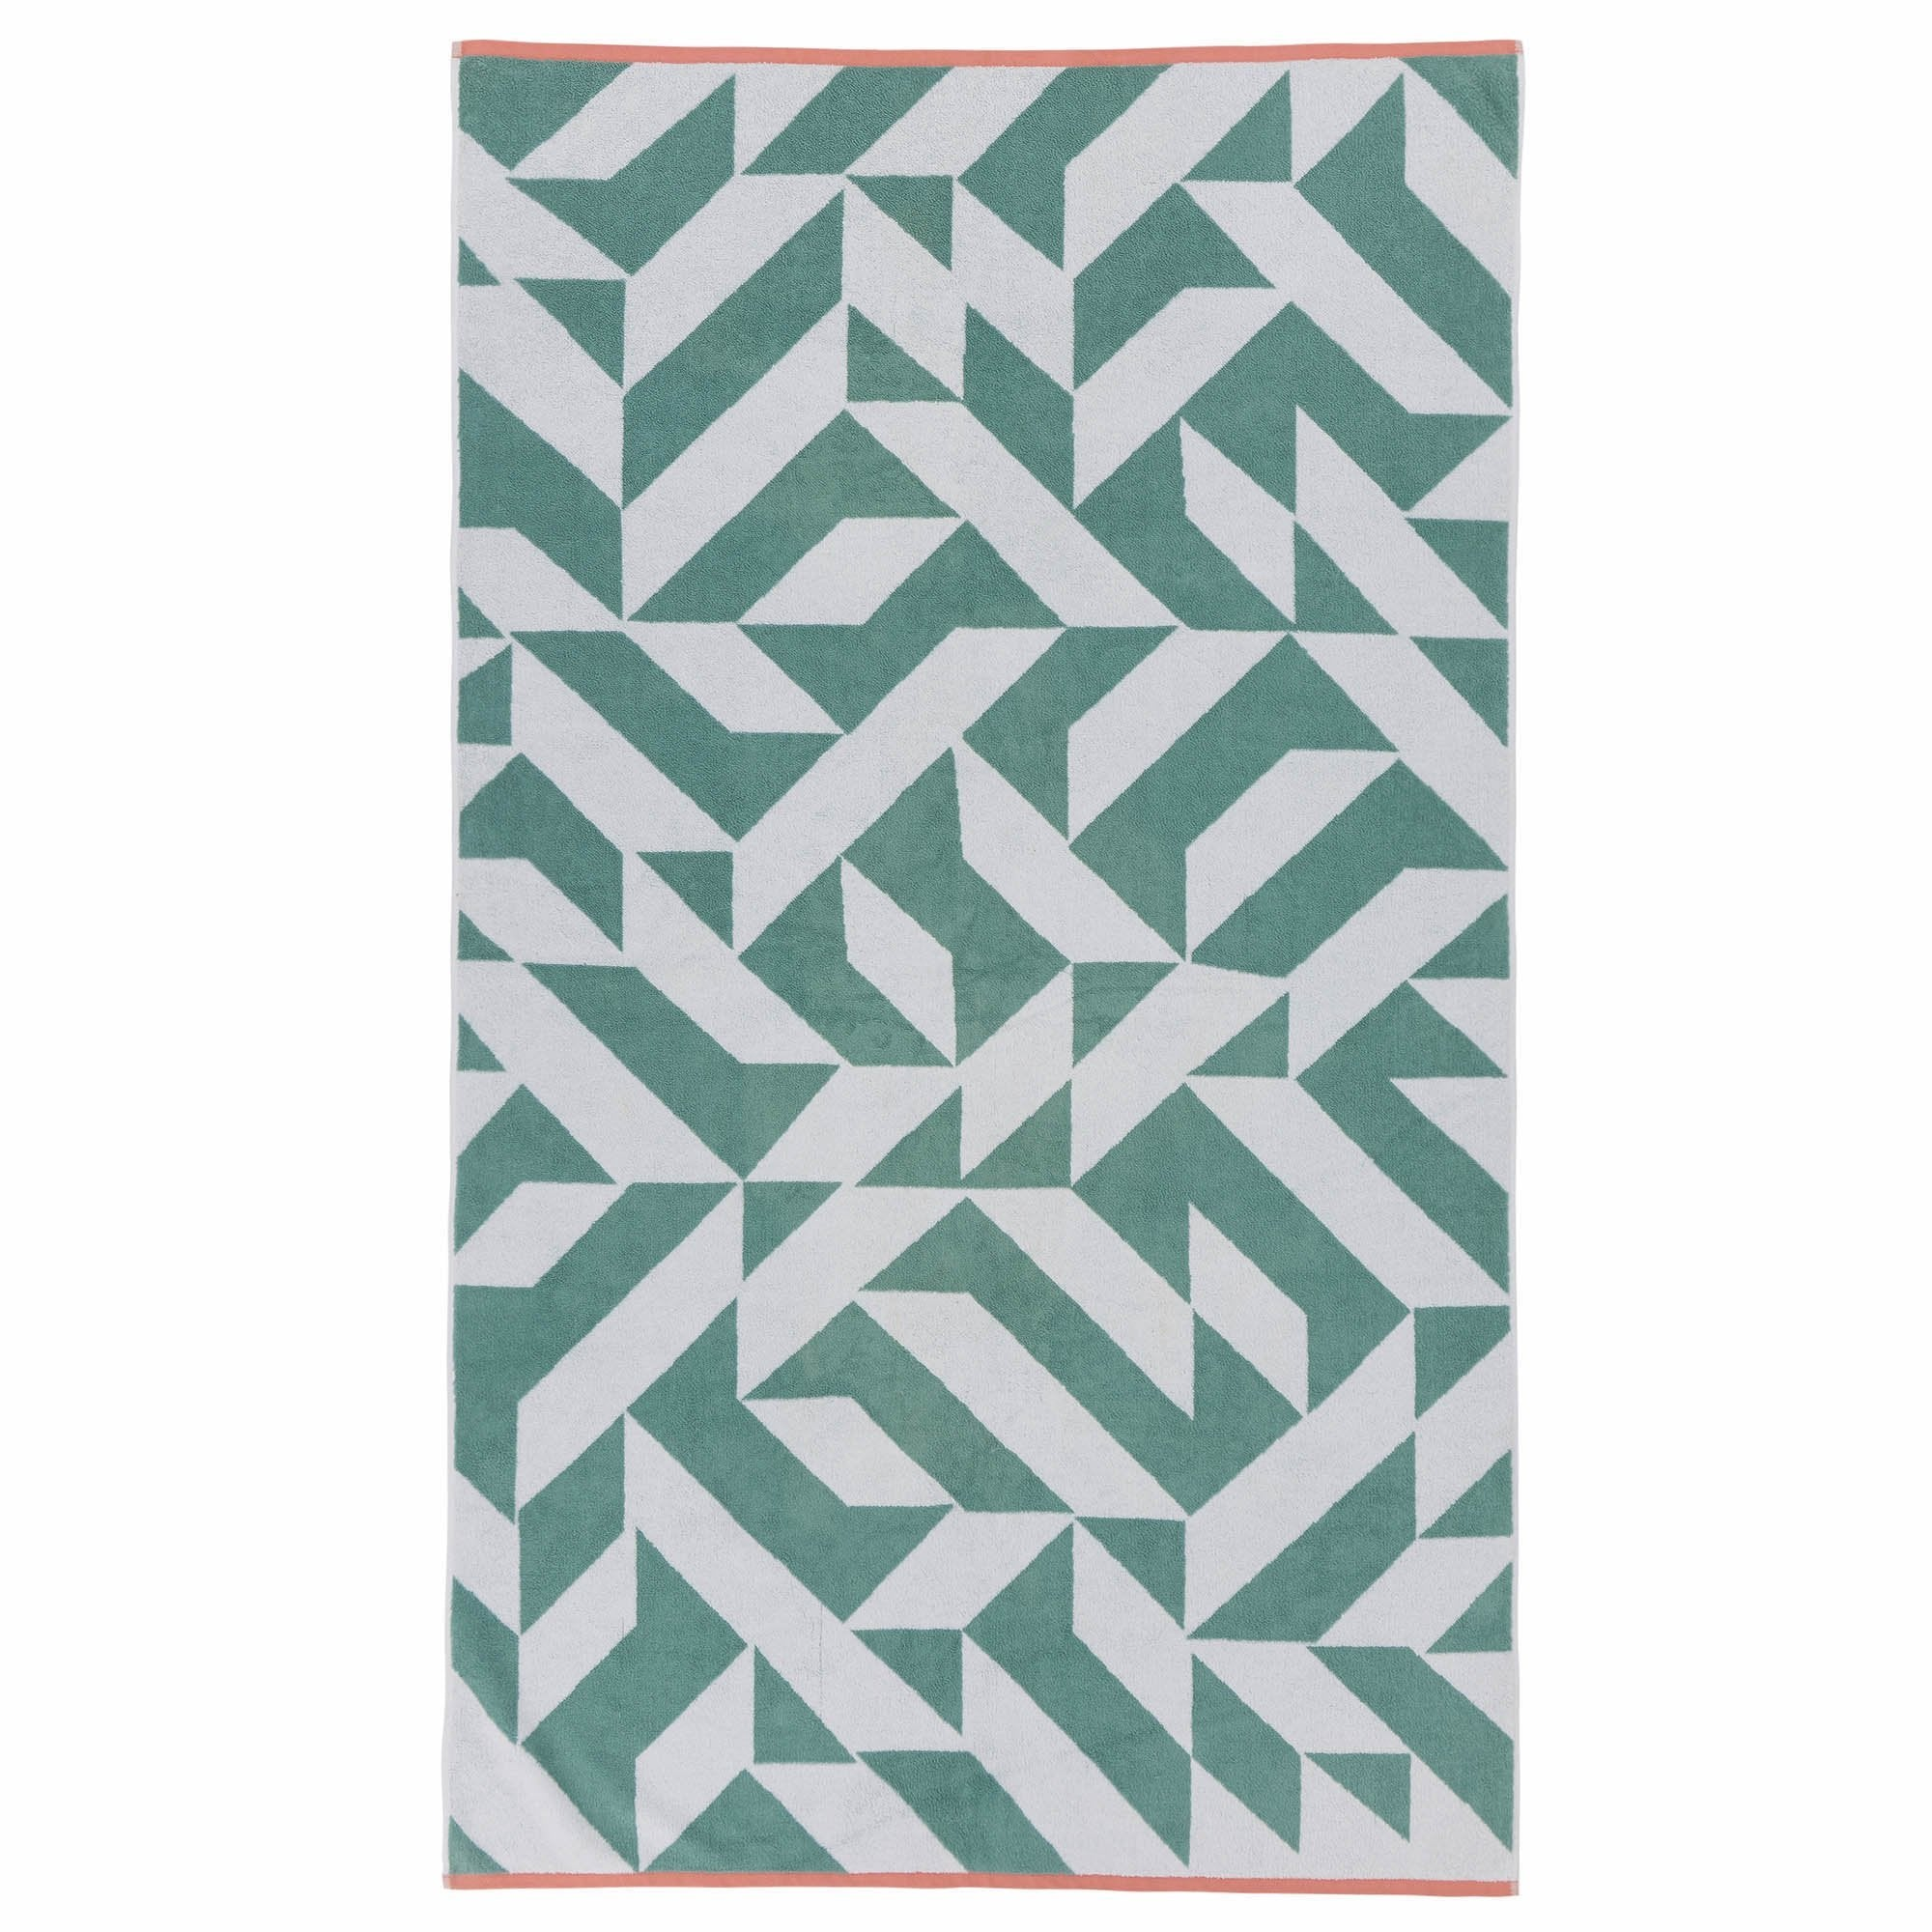 Arua beach towel, aqua & white & papaya, 100% cotton